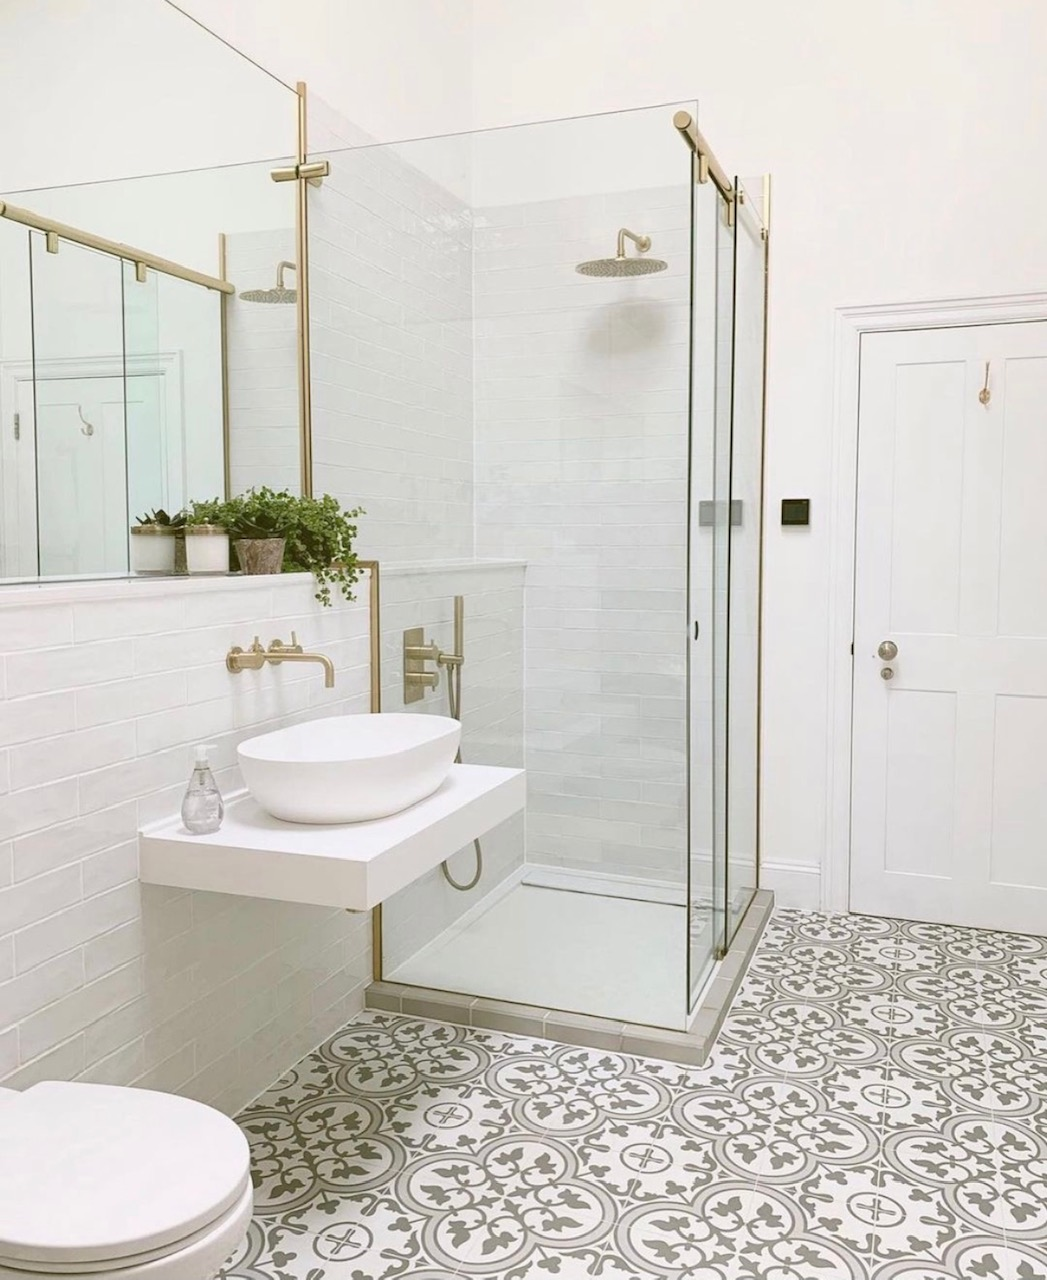 white bathroom with gold accents. Sink and shower